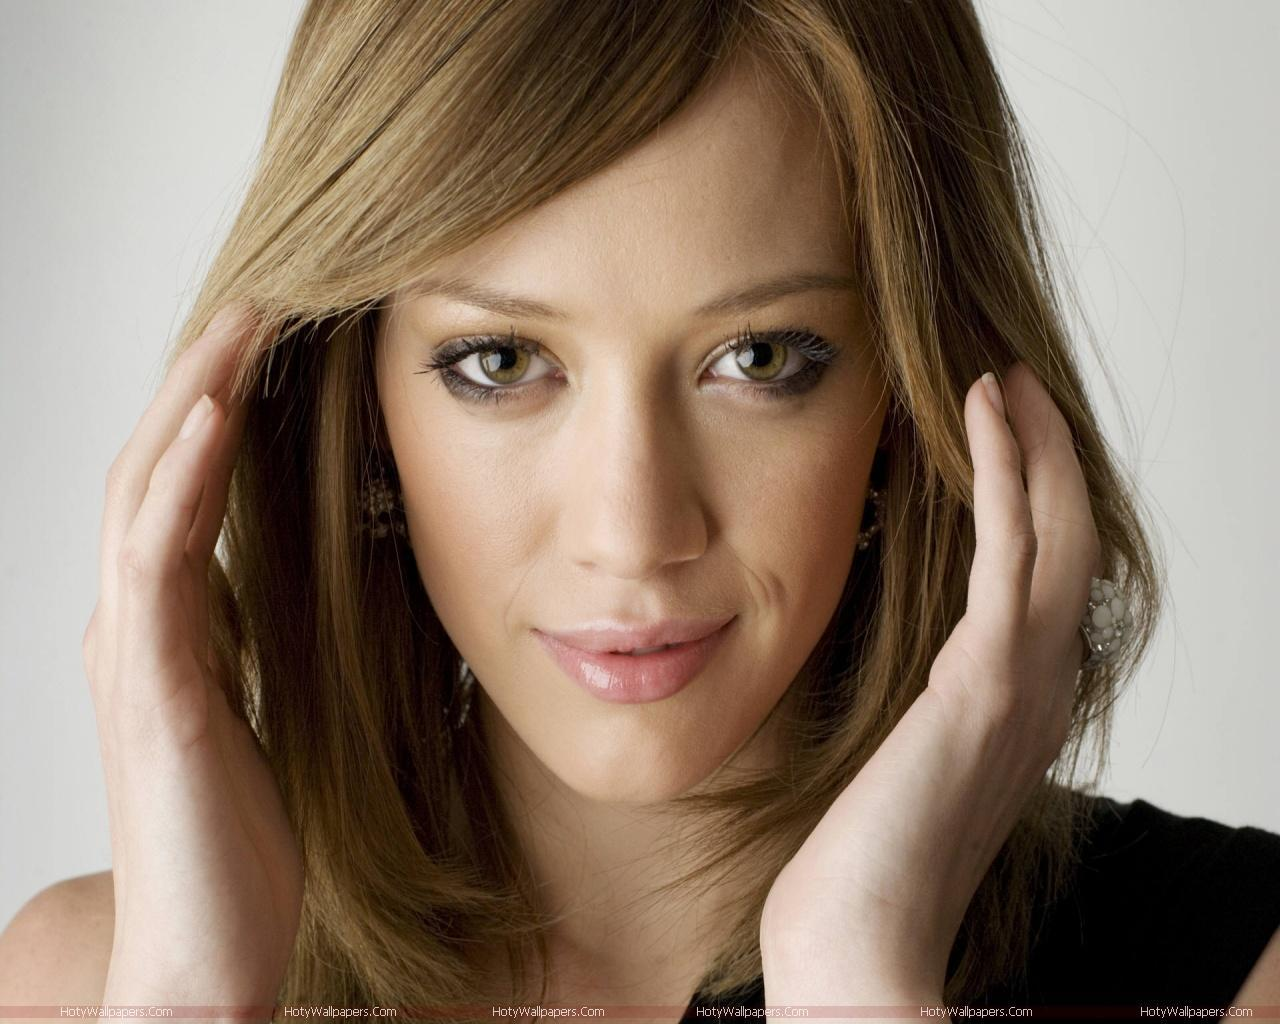 http://1.bp.blogspot.com/-dVwhpoGCnfs/TmT02oYoSlI/AAAAAAAAKWY/qBmGpi9xVWk/s1600/hollywood_actress_Hilary_Duff_wallpaper.jpg